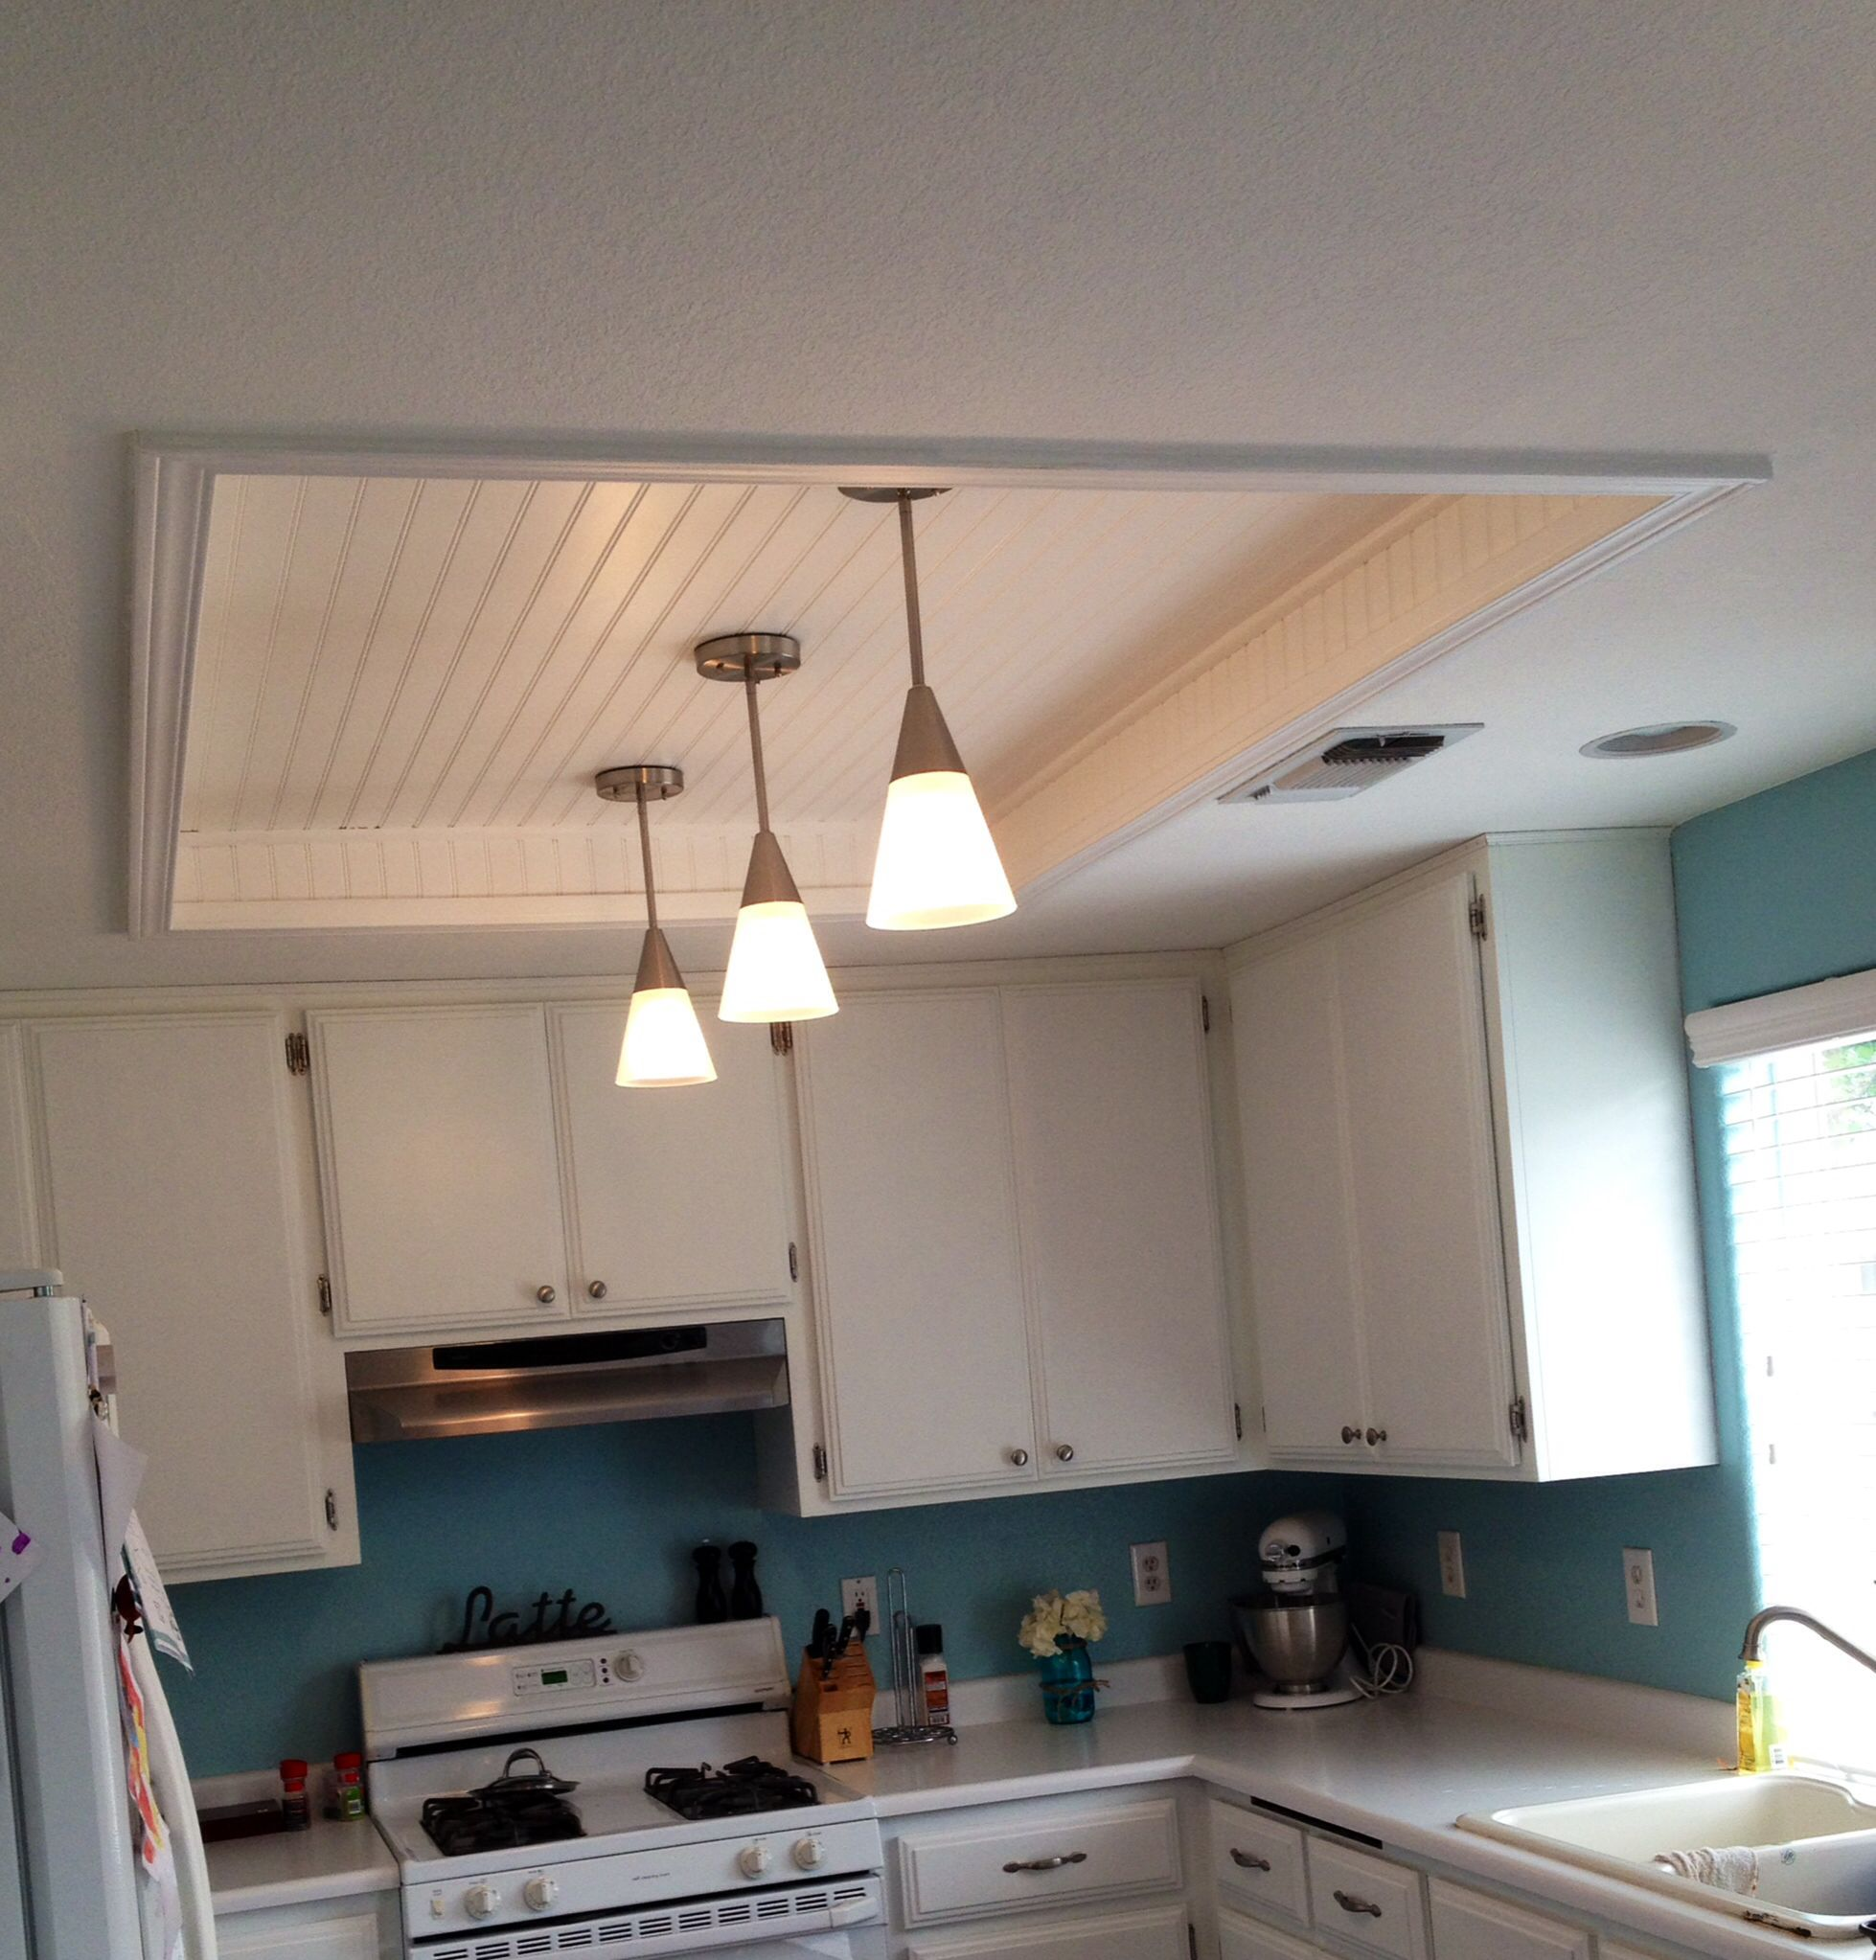 Ugly fluorescent lightgone replaced with beadbord trim and kitchen fluorescent light box remodel with wood beadboard ceiling panels in white paint finishes also stainless steel pendant lighting fixtures mozeypictures Choice Image